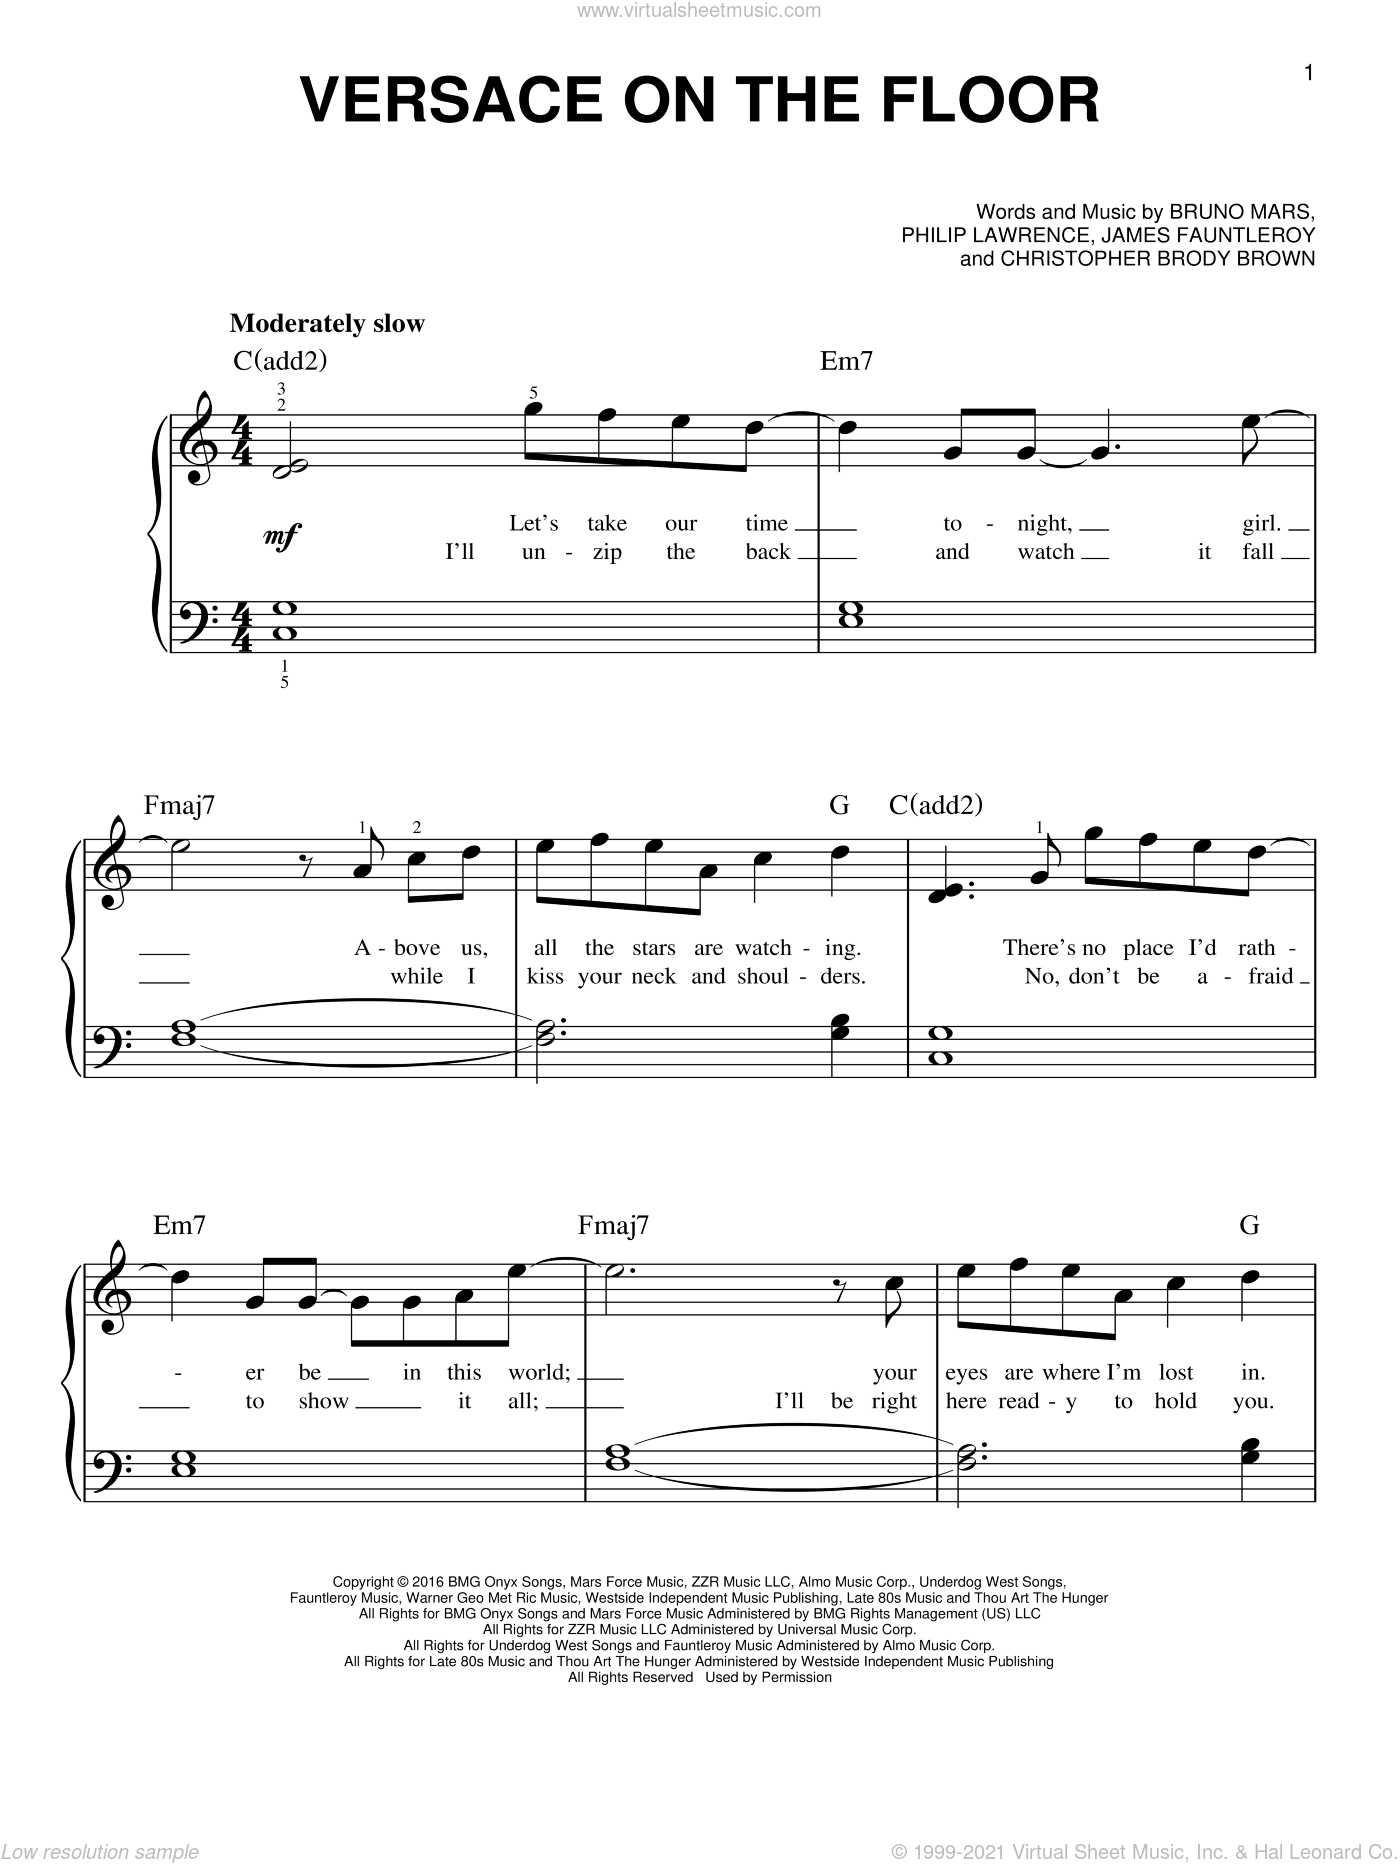 Versace On The Floor sheet music for piano solo by Bruno Mars, James Fauntleroy and Philip Lawrence, easy piano. Score Image Preview.